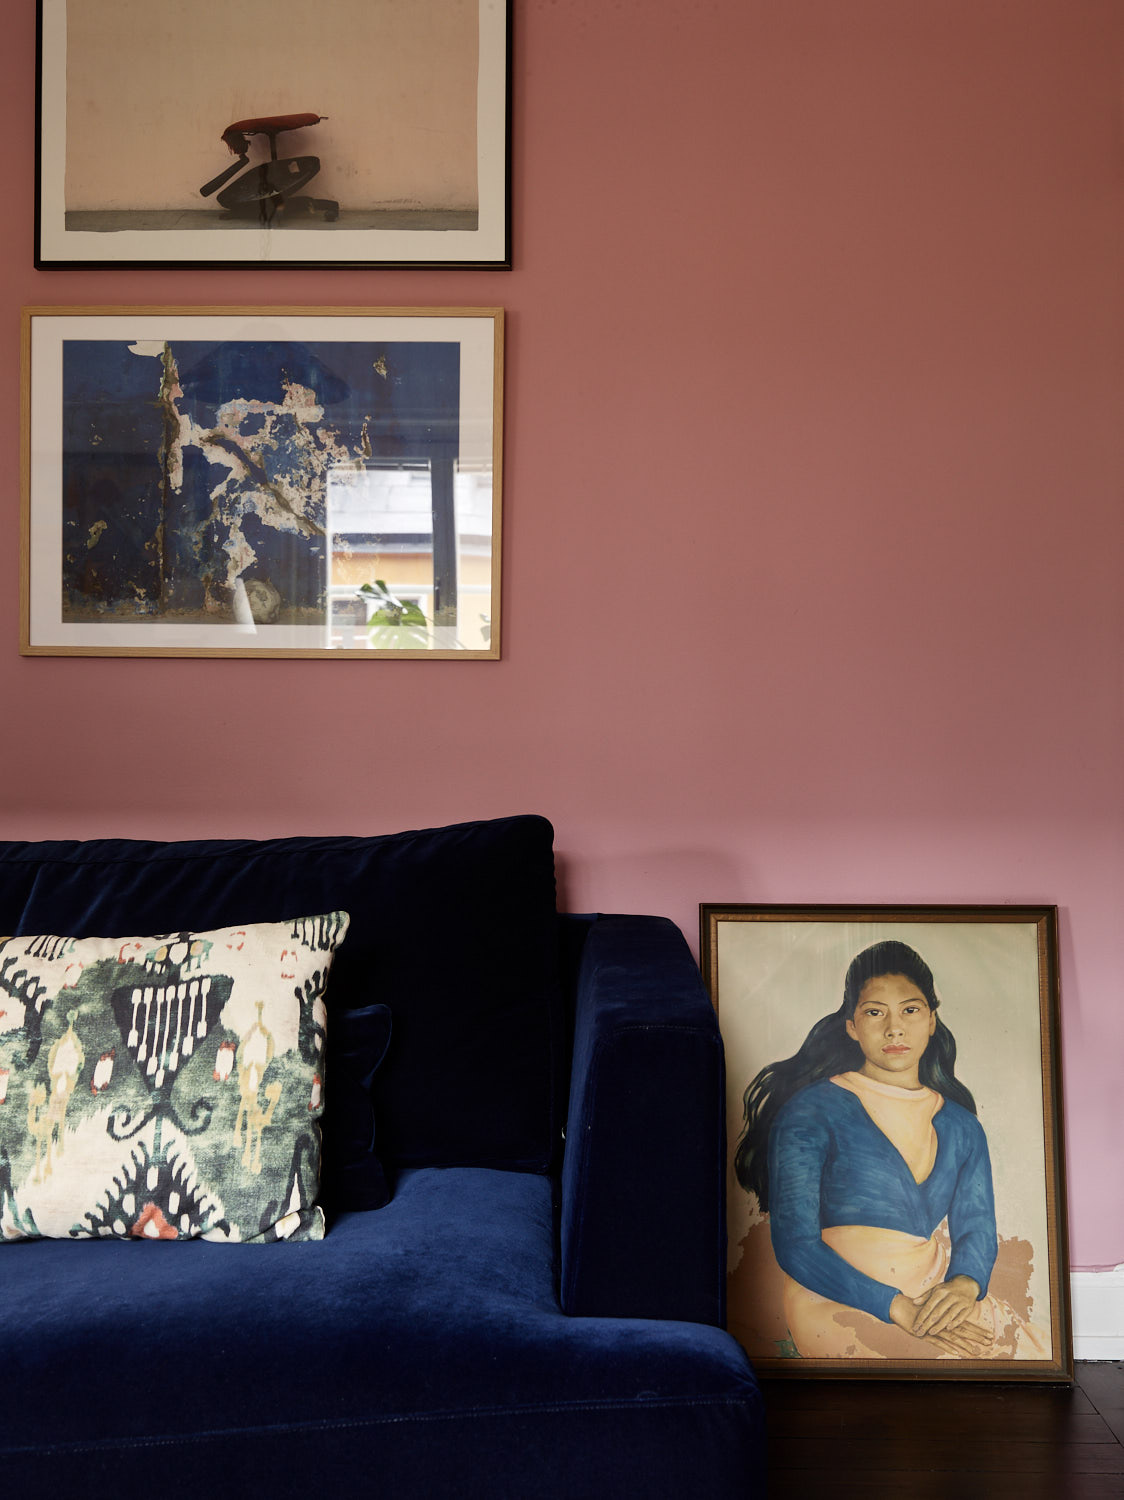 The Nordroom - A Vibrant Pink and Blue Apartment